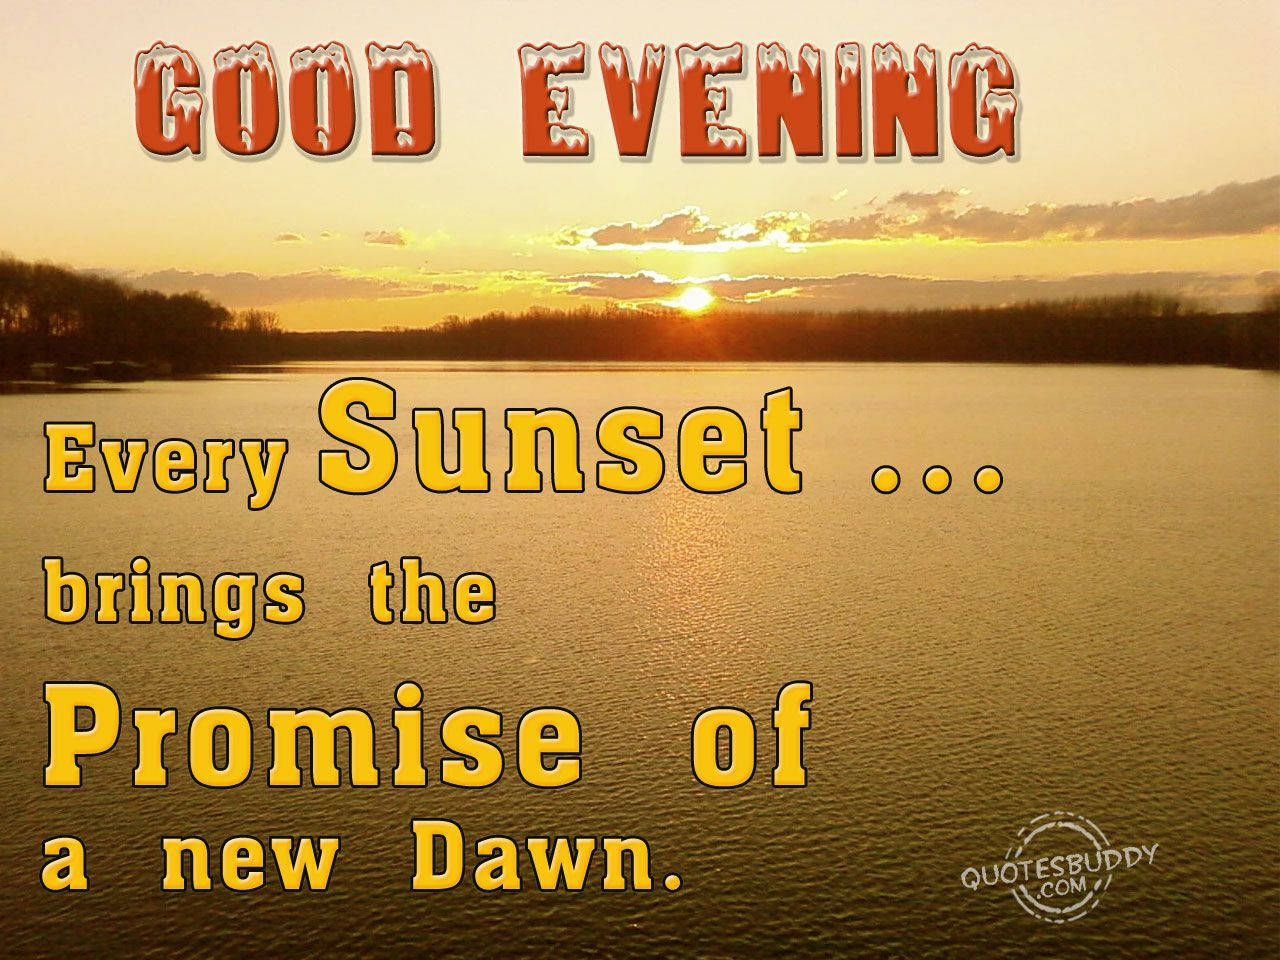 Have A Good Evening Good Evening Quotes Graphics Things That